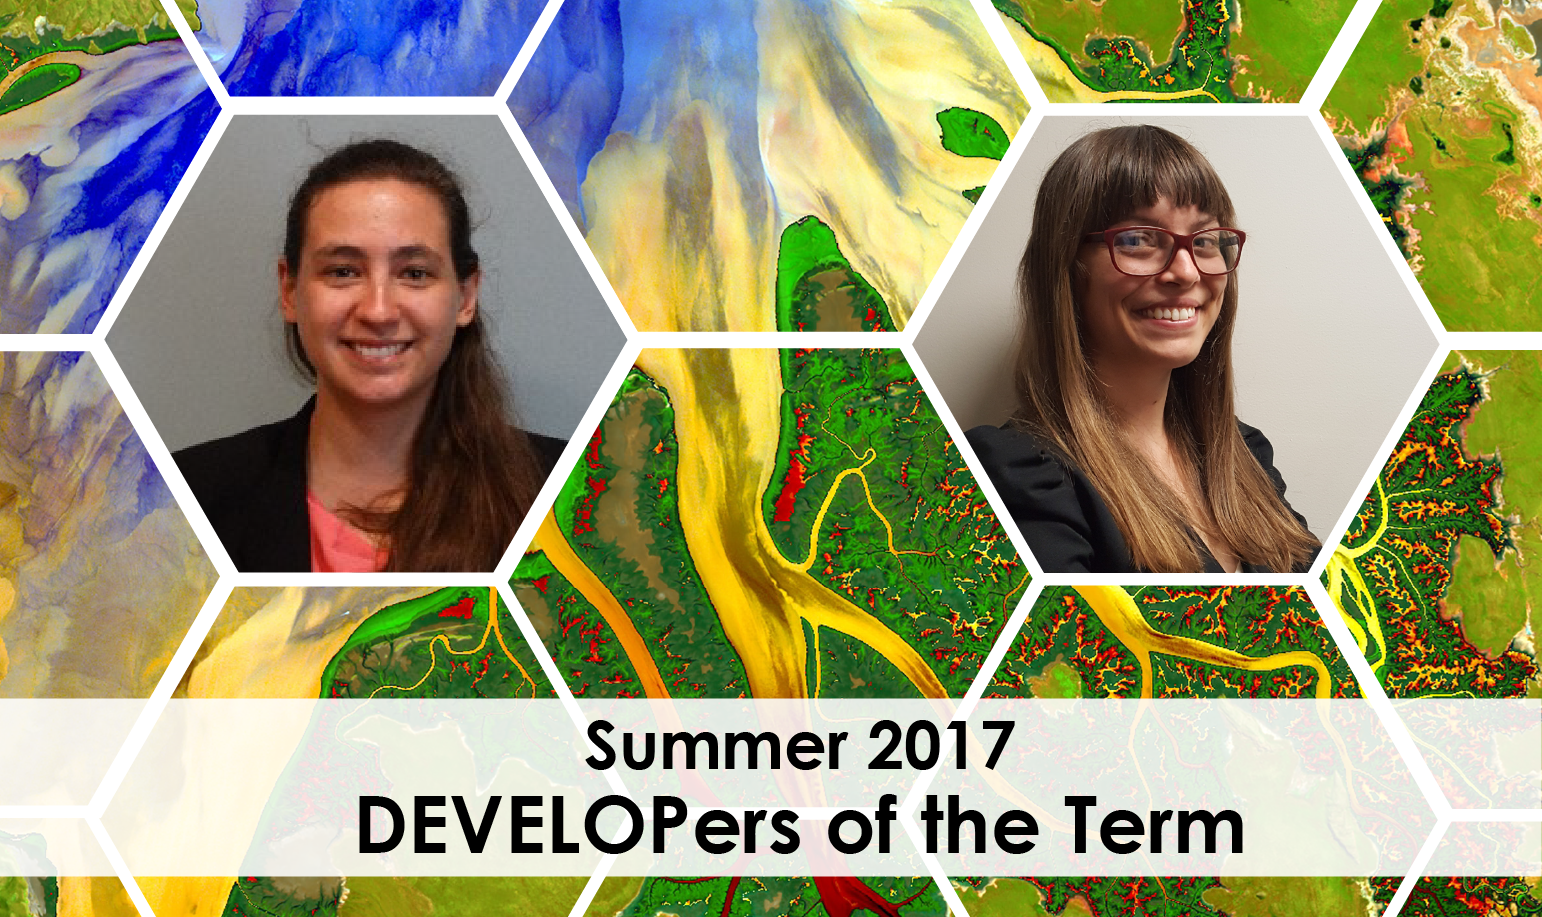 2017 Summer DEVELOPers of the Term